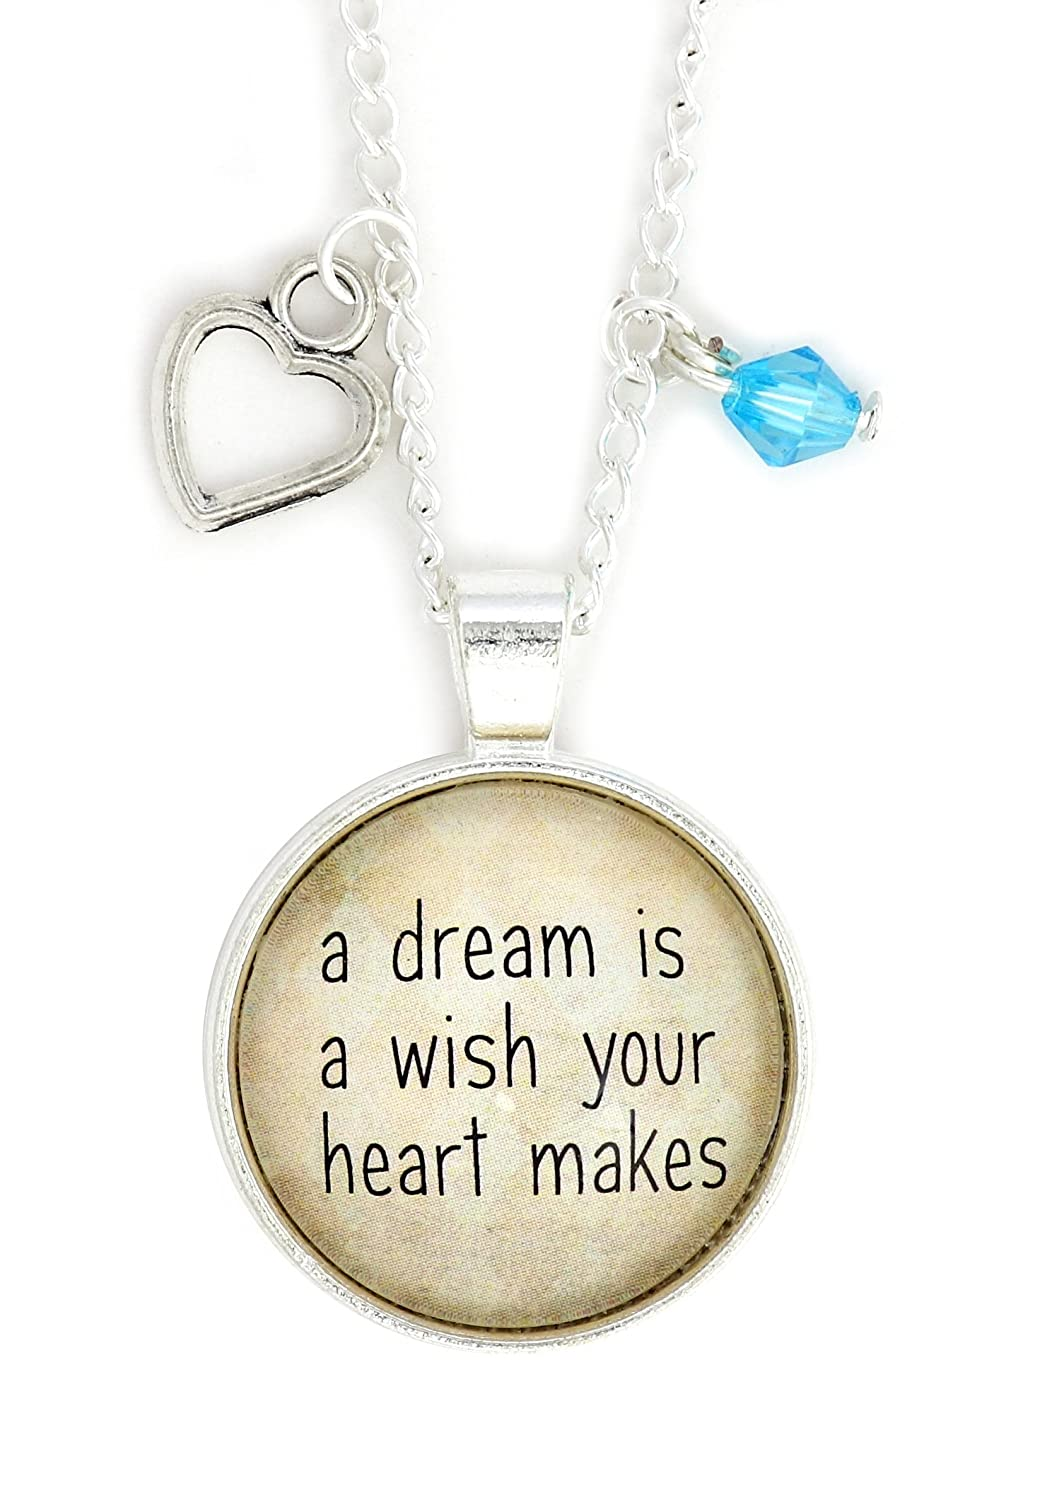 A Dream is a Wish Your Heart Makes Necklace Silver Tone NW61 Heart Shape Charm Pendant Fashion Jewelry